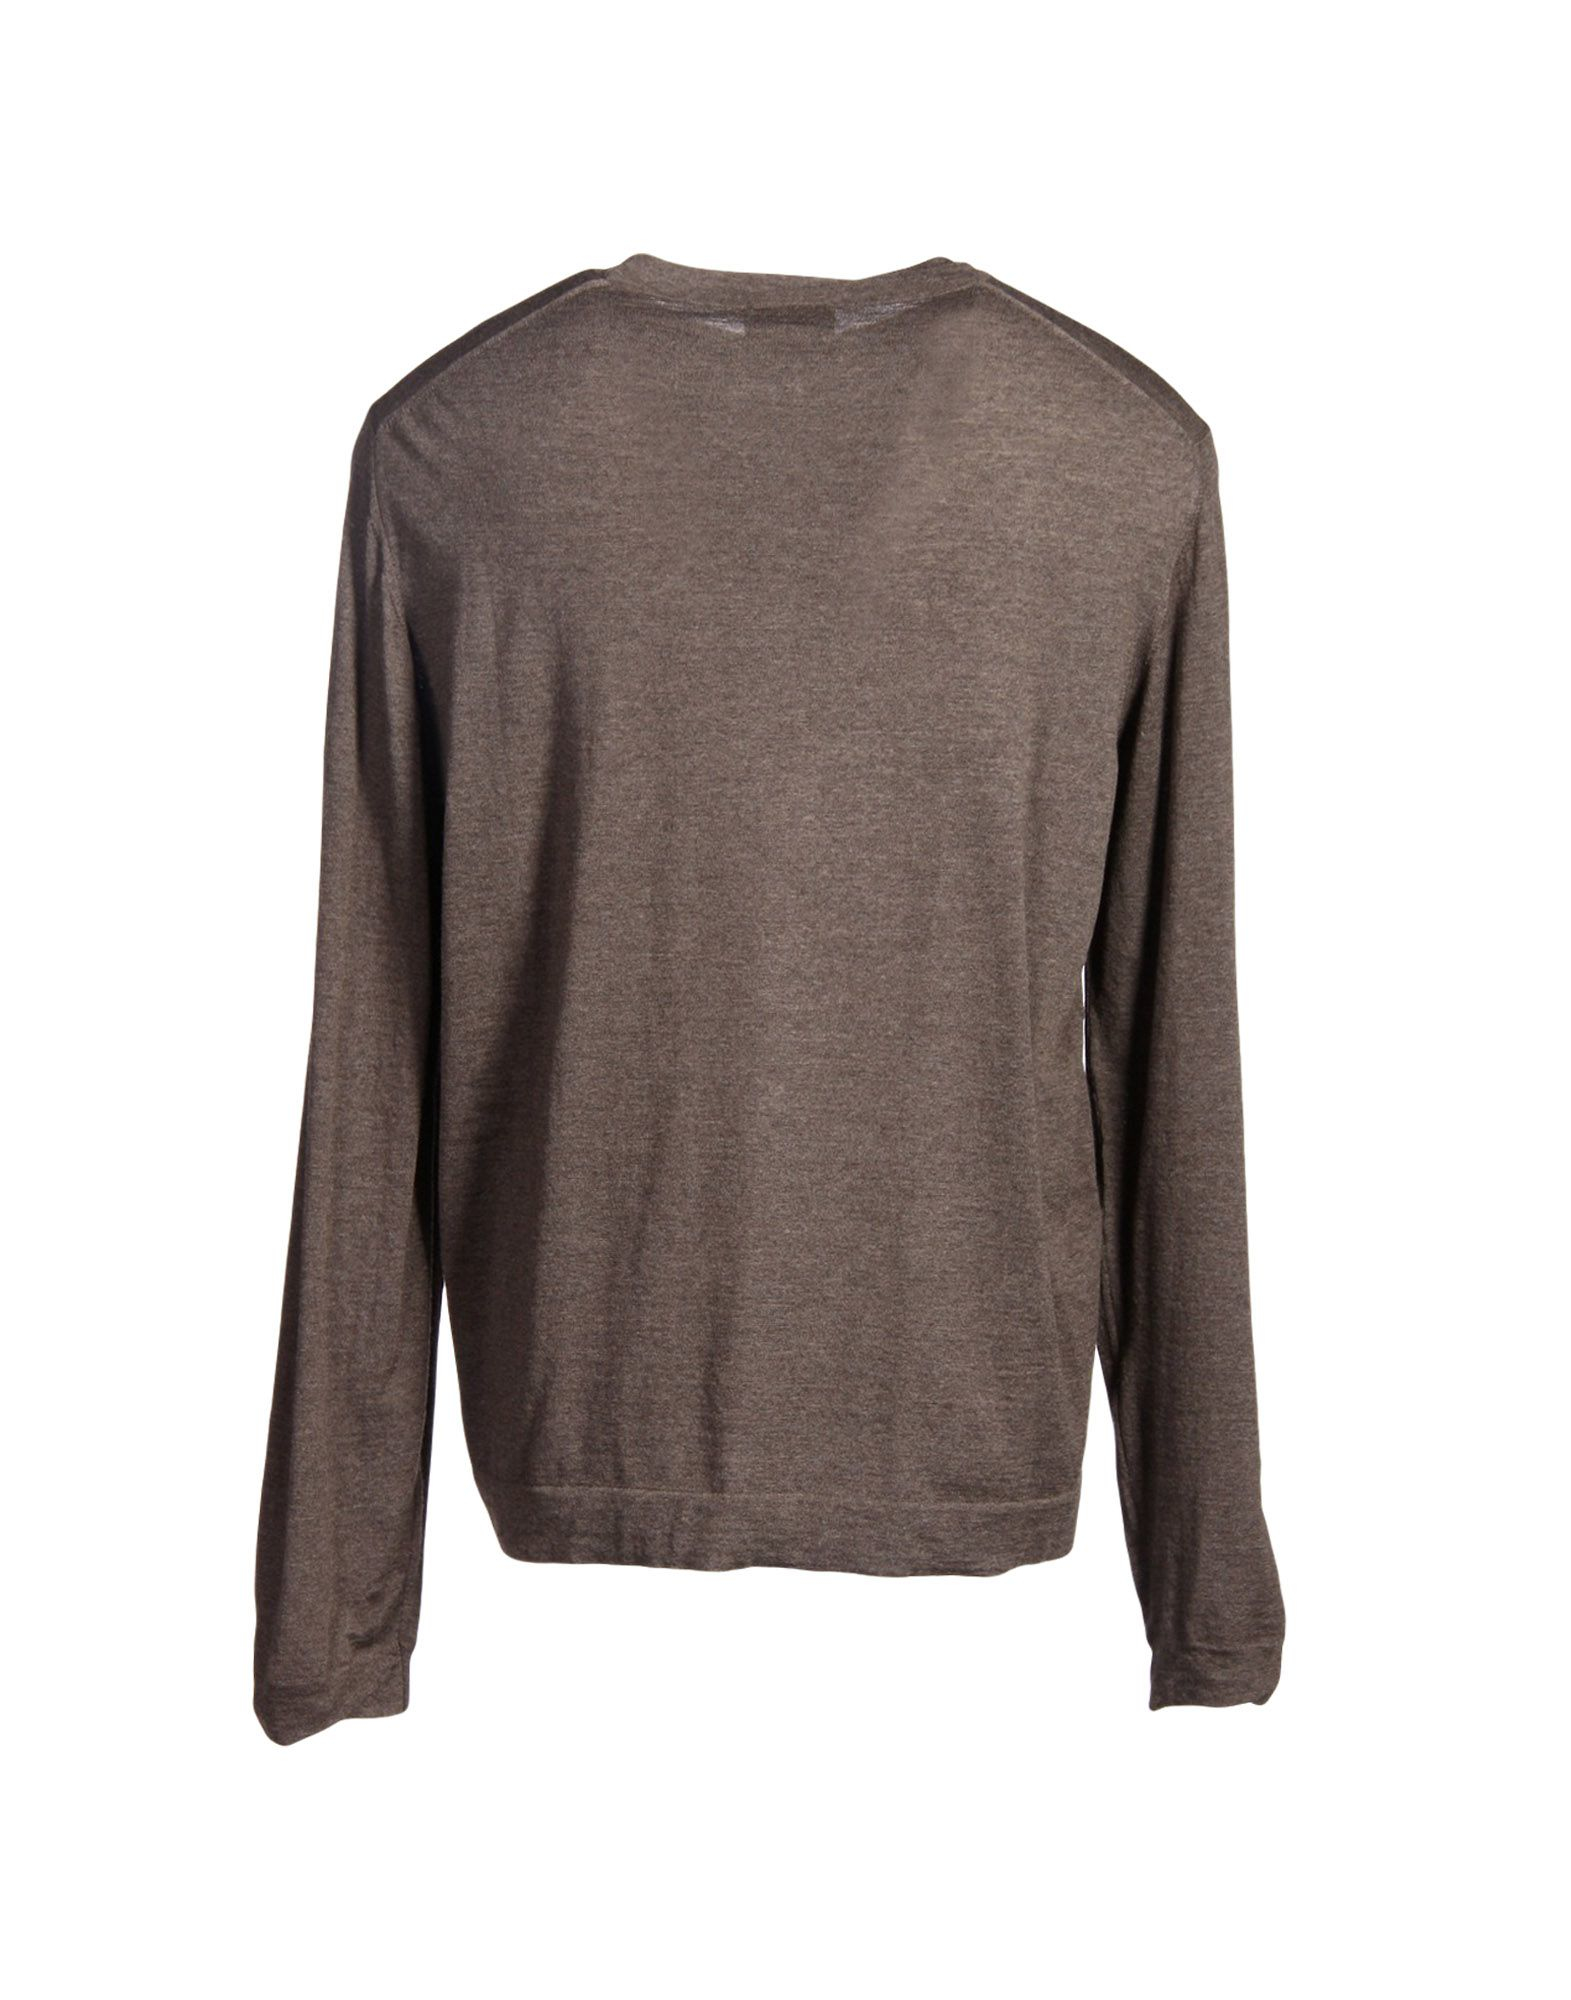 lyst emporio armani sweater in brown for men. Black Bedroom Furniture Sets. Home Design Ideas